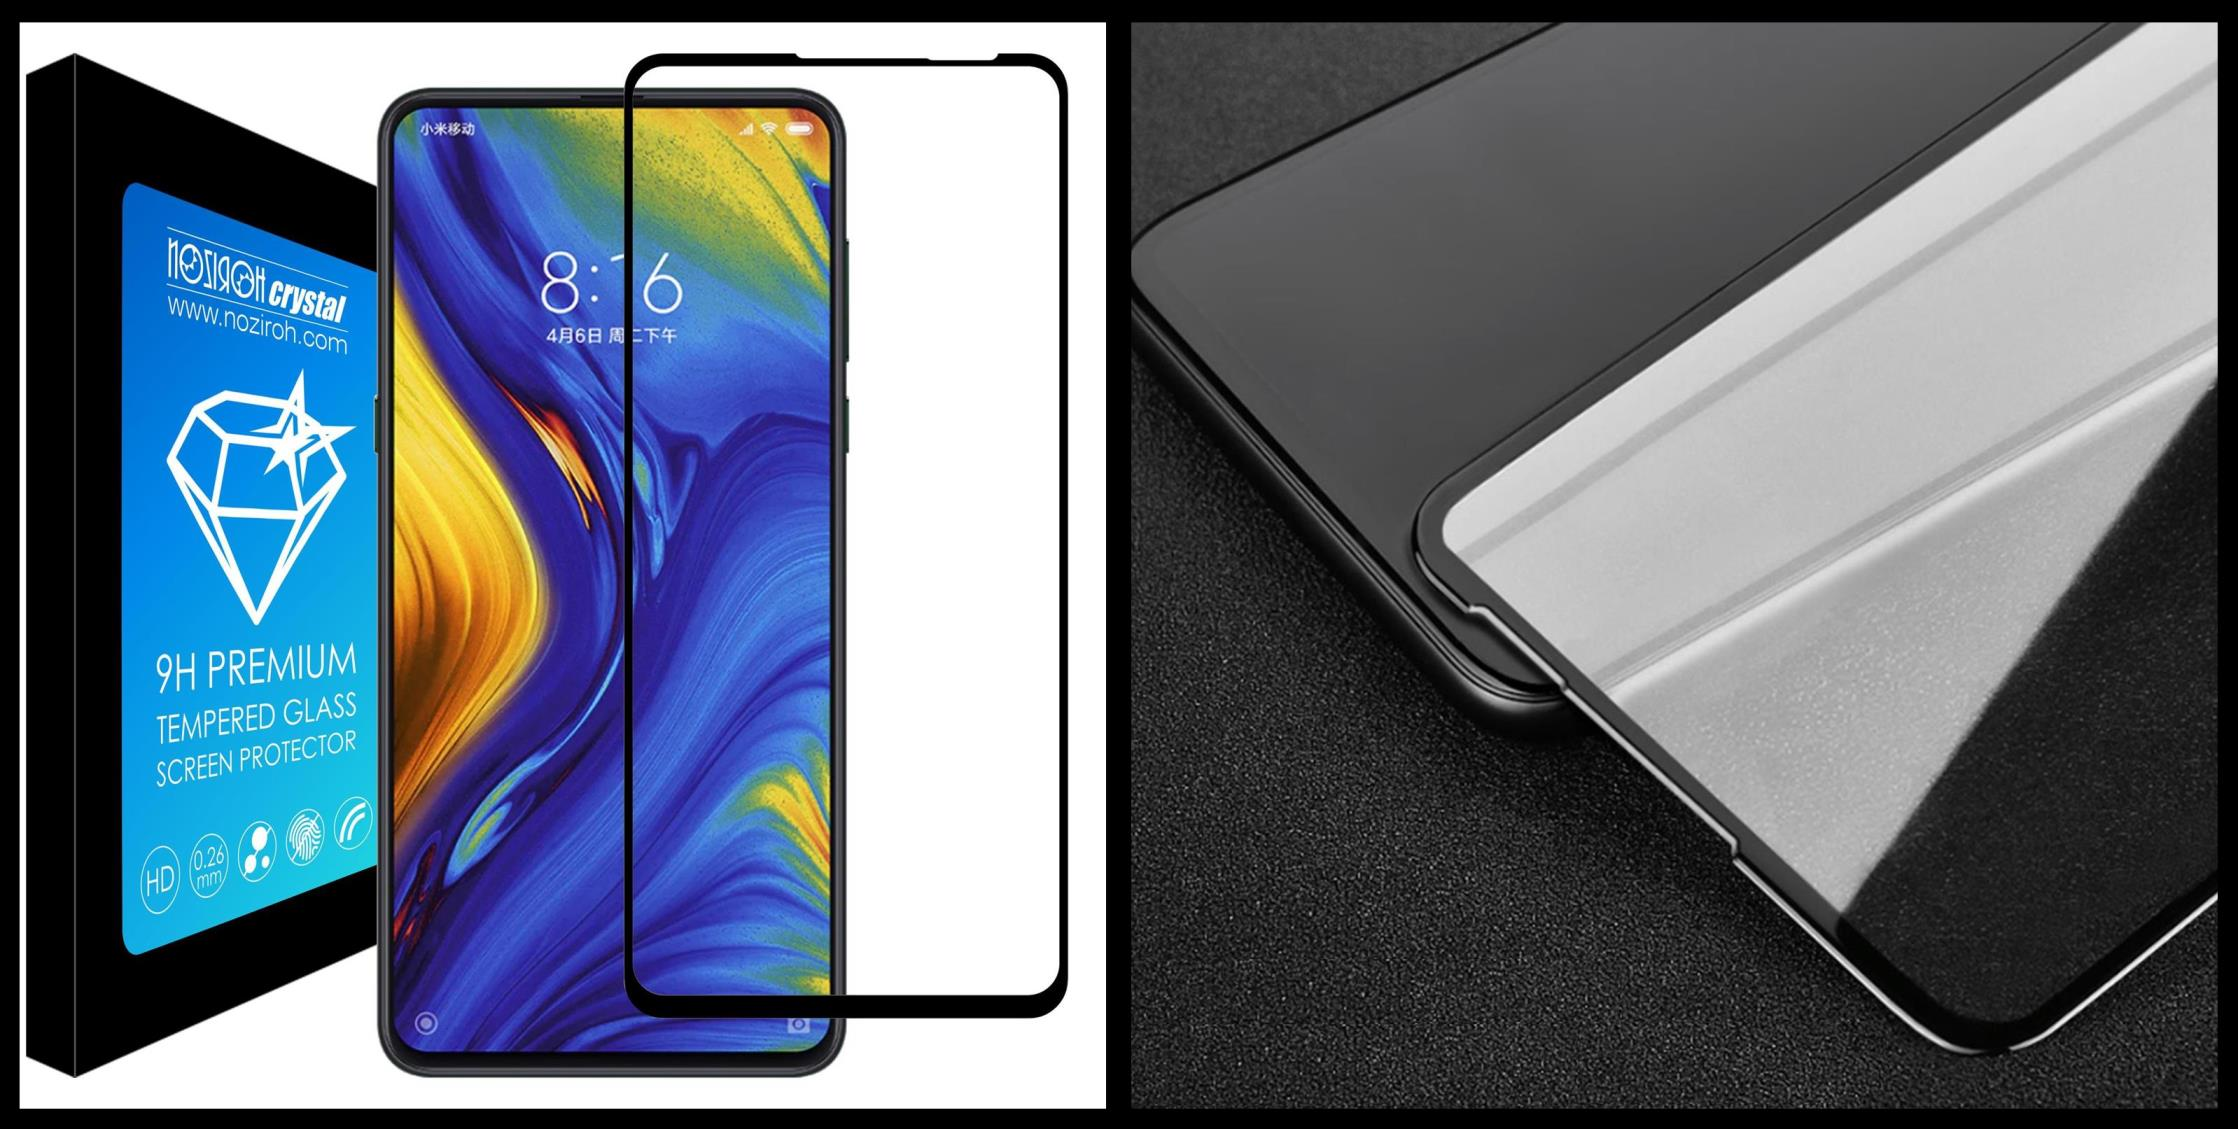 noziroh-crystal-xiaomi-mi-mix-3-tempered-glass-9h-3d-shockproof-scratchproof-black